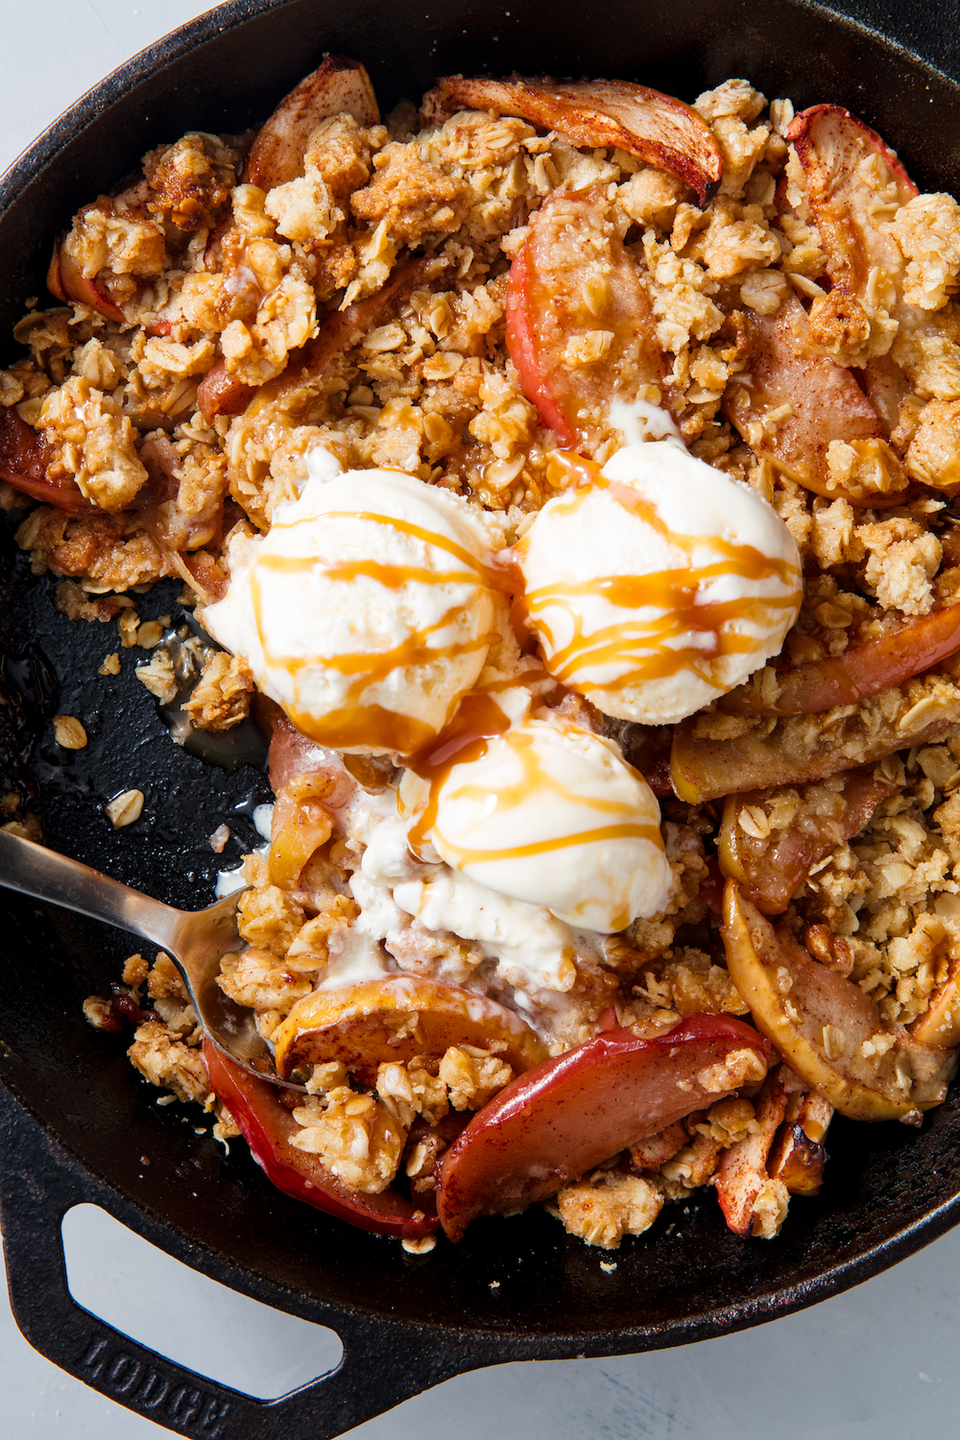 """<p>Anyone can make a good apple crisp, even if they """"hate to bake."""" Follow our top tips and you'll be making this stunner of a recipe all fall long. </p><p>Get the recipe from <a href=""""https://www.delish.com/cooking/recipe-ideas/a21581218/best-apple-crisp-recipe/"""" rel=""""nofollow noopener"""" target=""""_blank"""" data-ylk=""""slk:Delish"""" class=""""link rapid-noclick-resp"""">Delish</a>.</p>"""